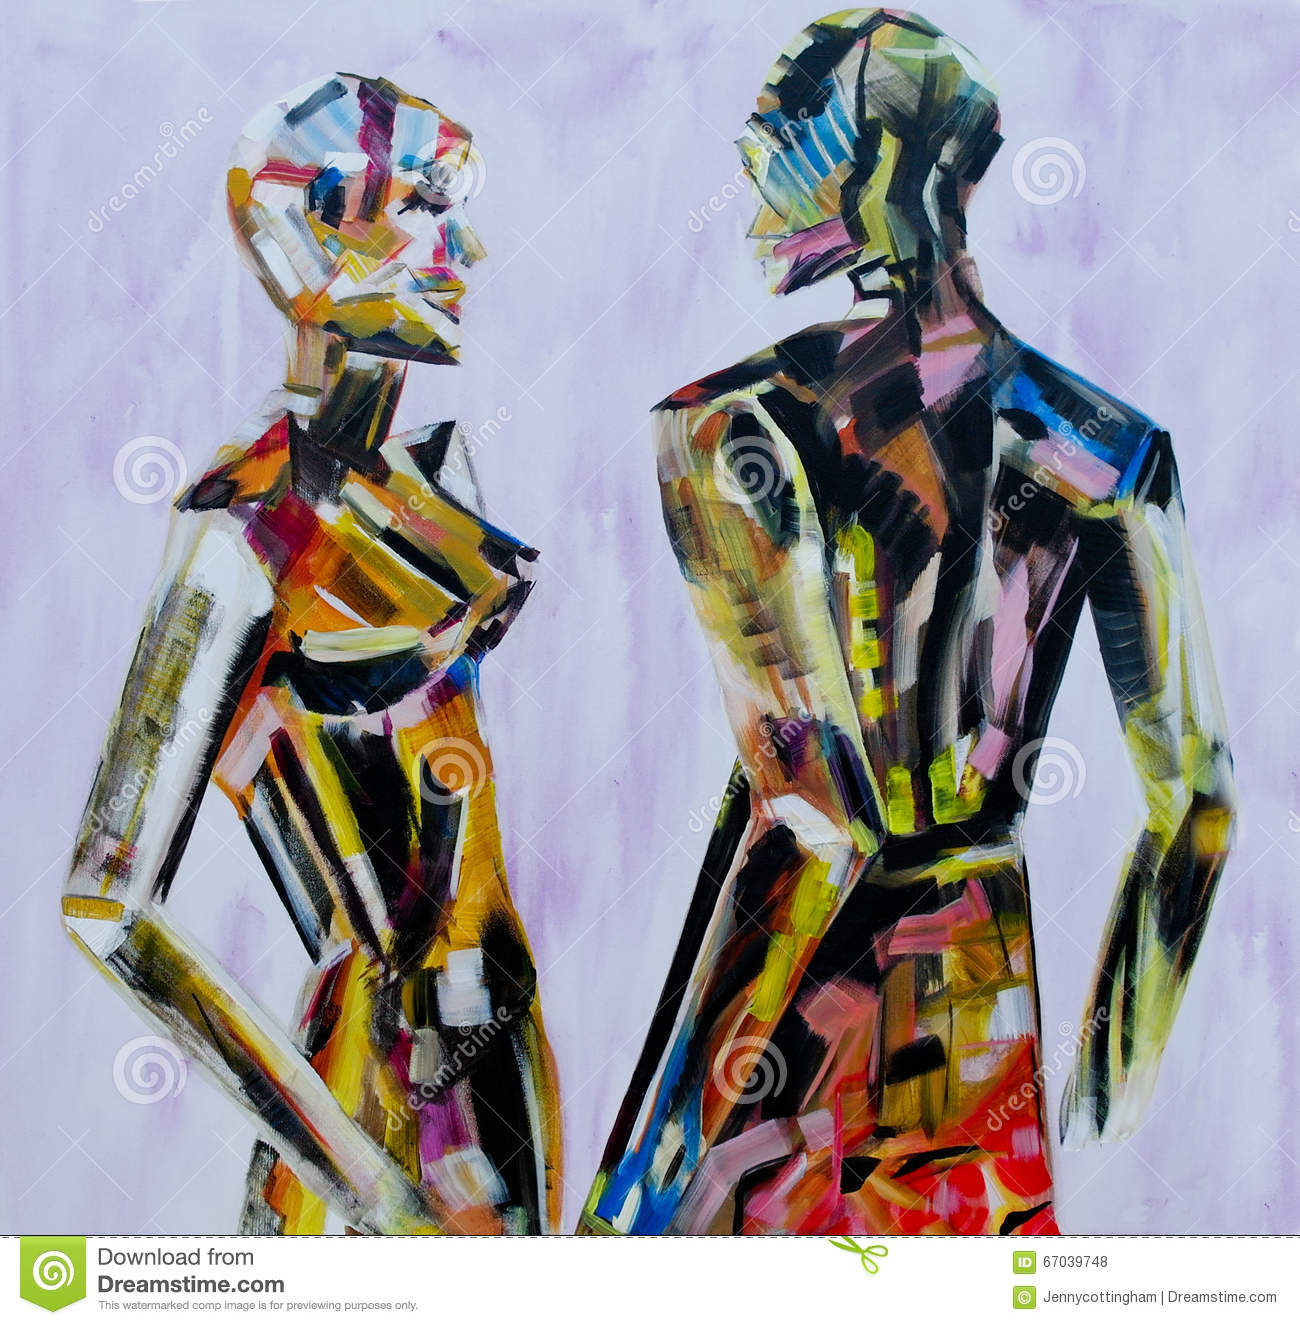 Do You Come Here Often Painting Of Mannequin Robotic Style